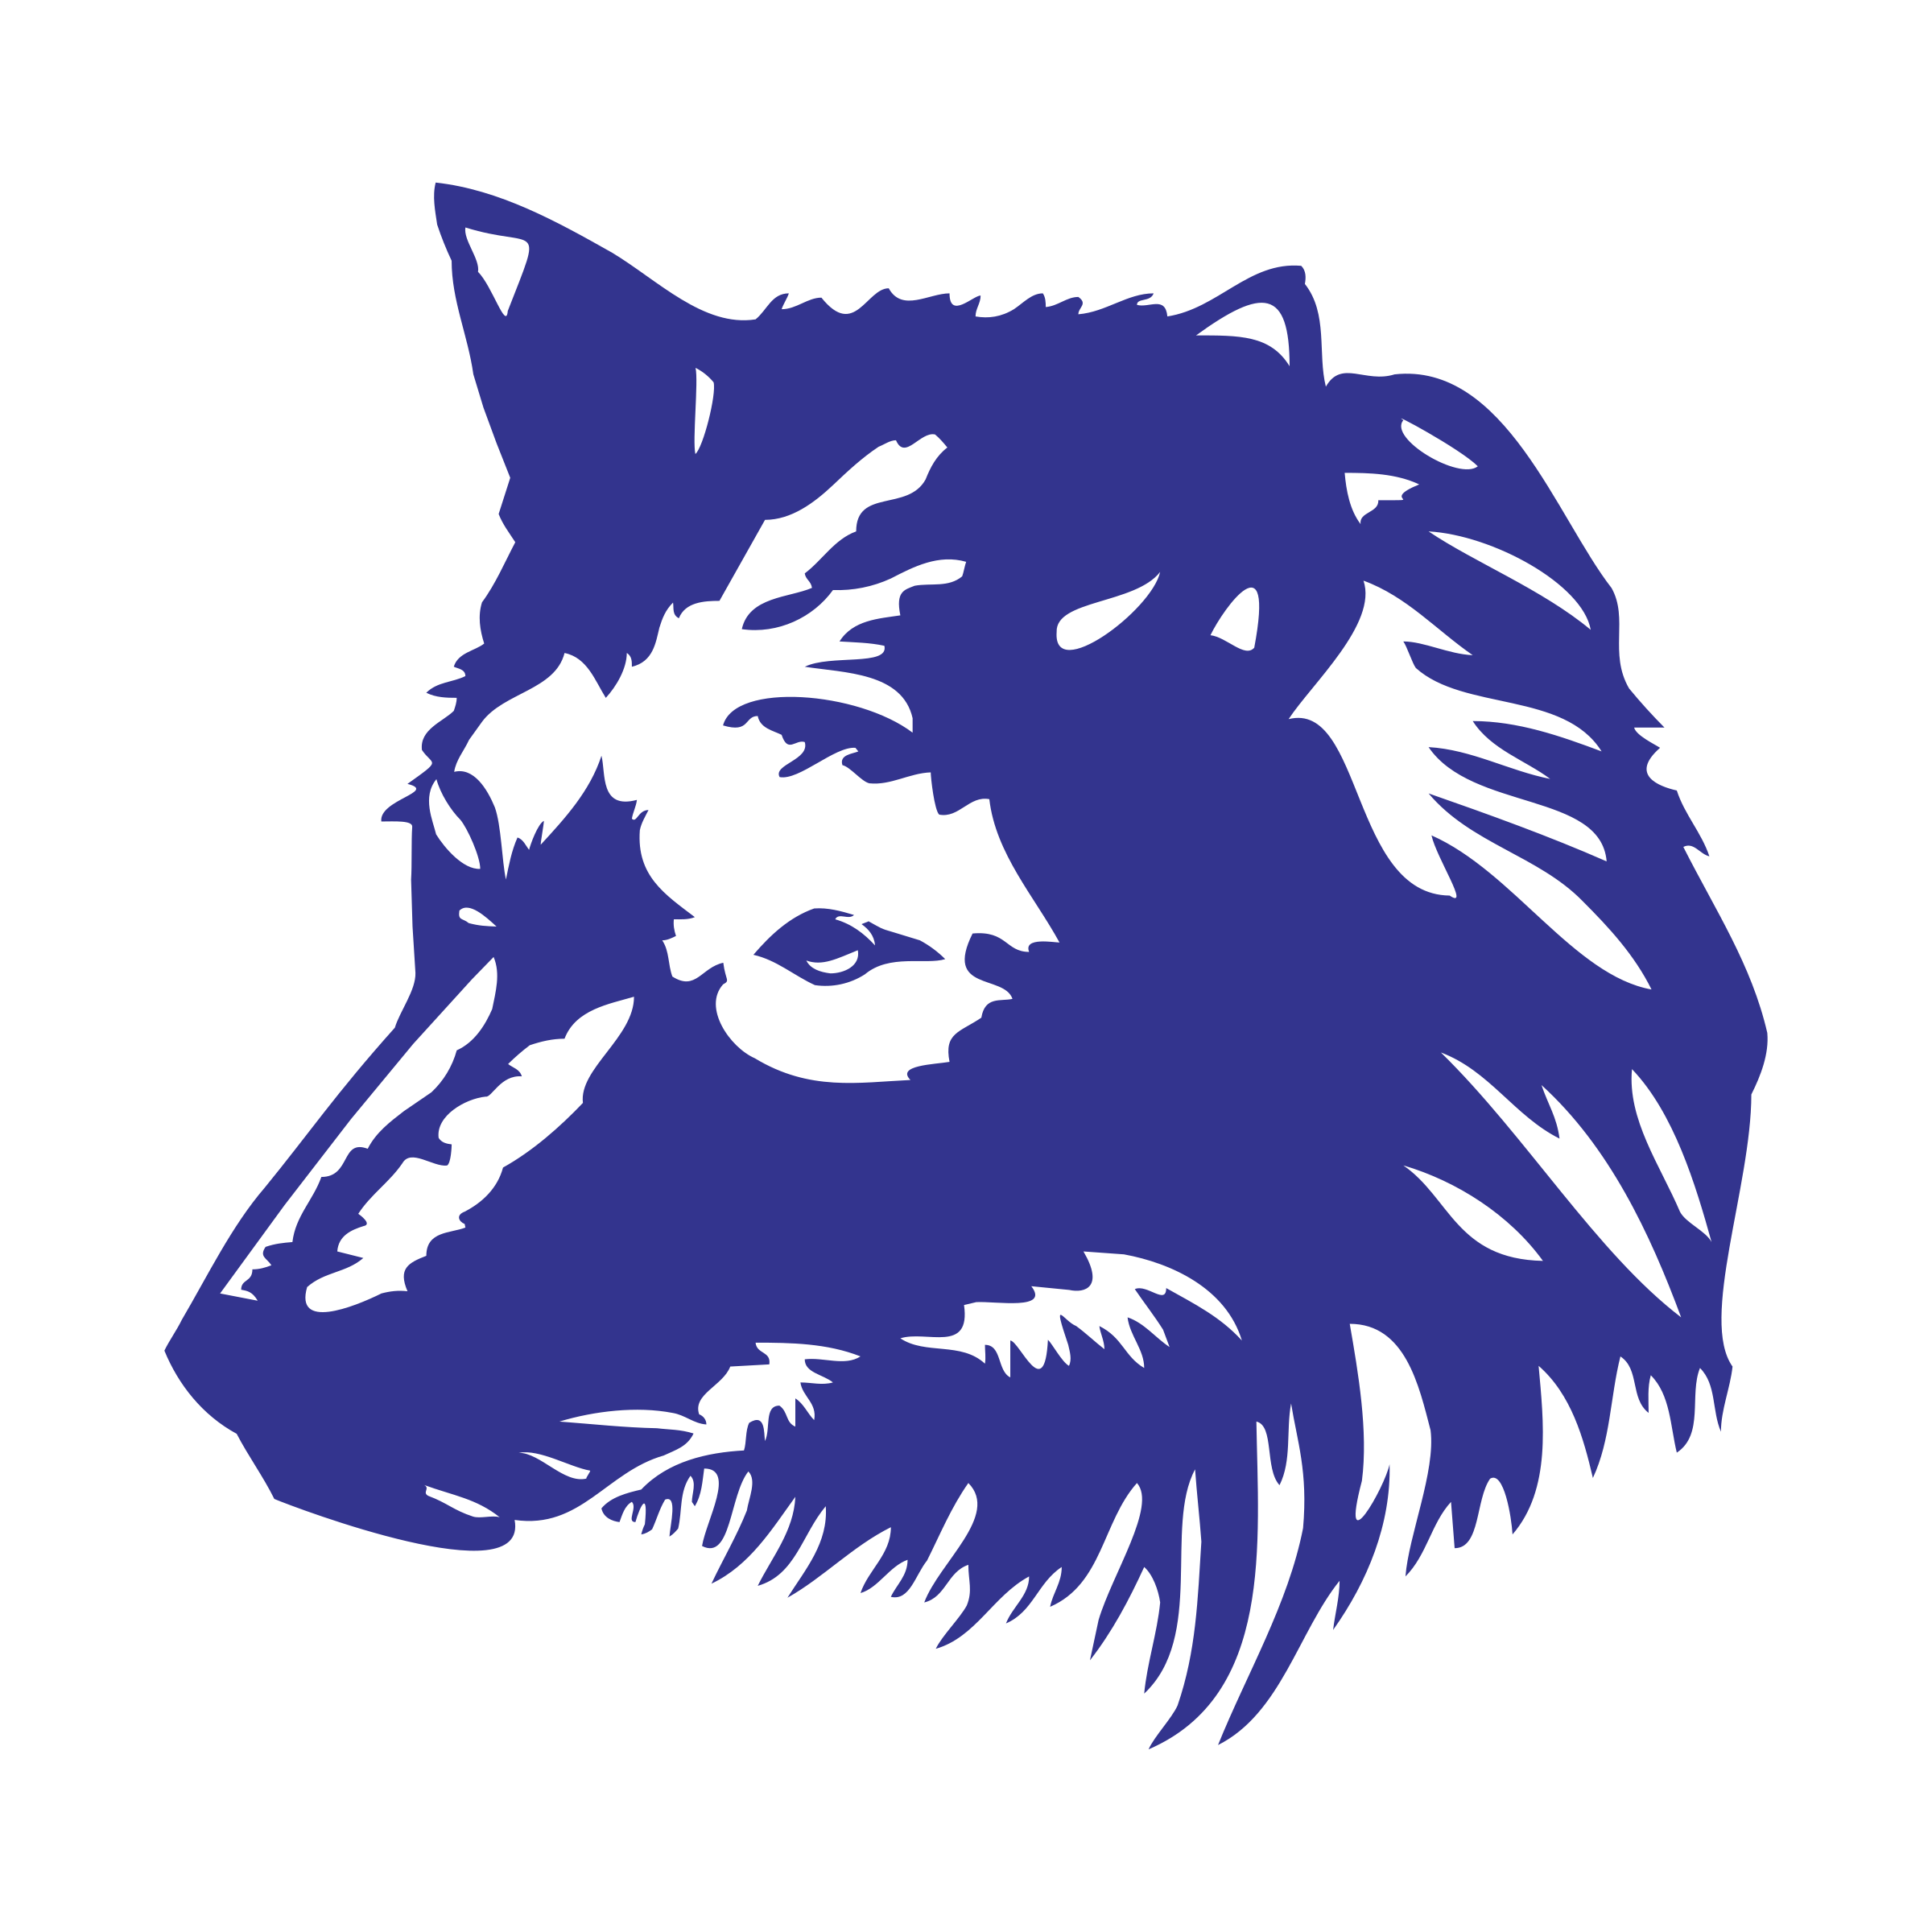 Wolf 1 Wing Logo PNG Transparent & SVG Vector - Freebie Supply